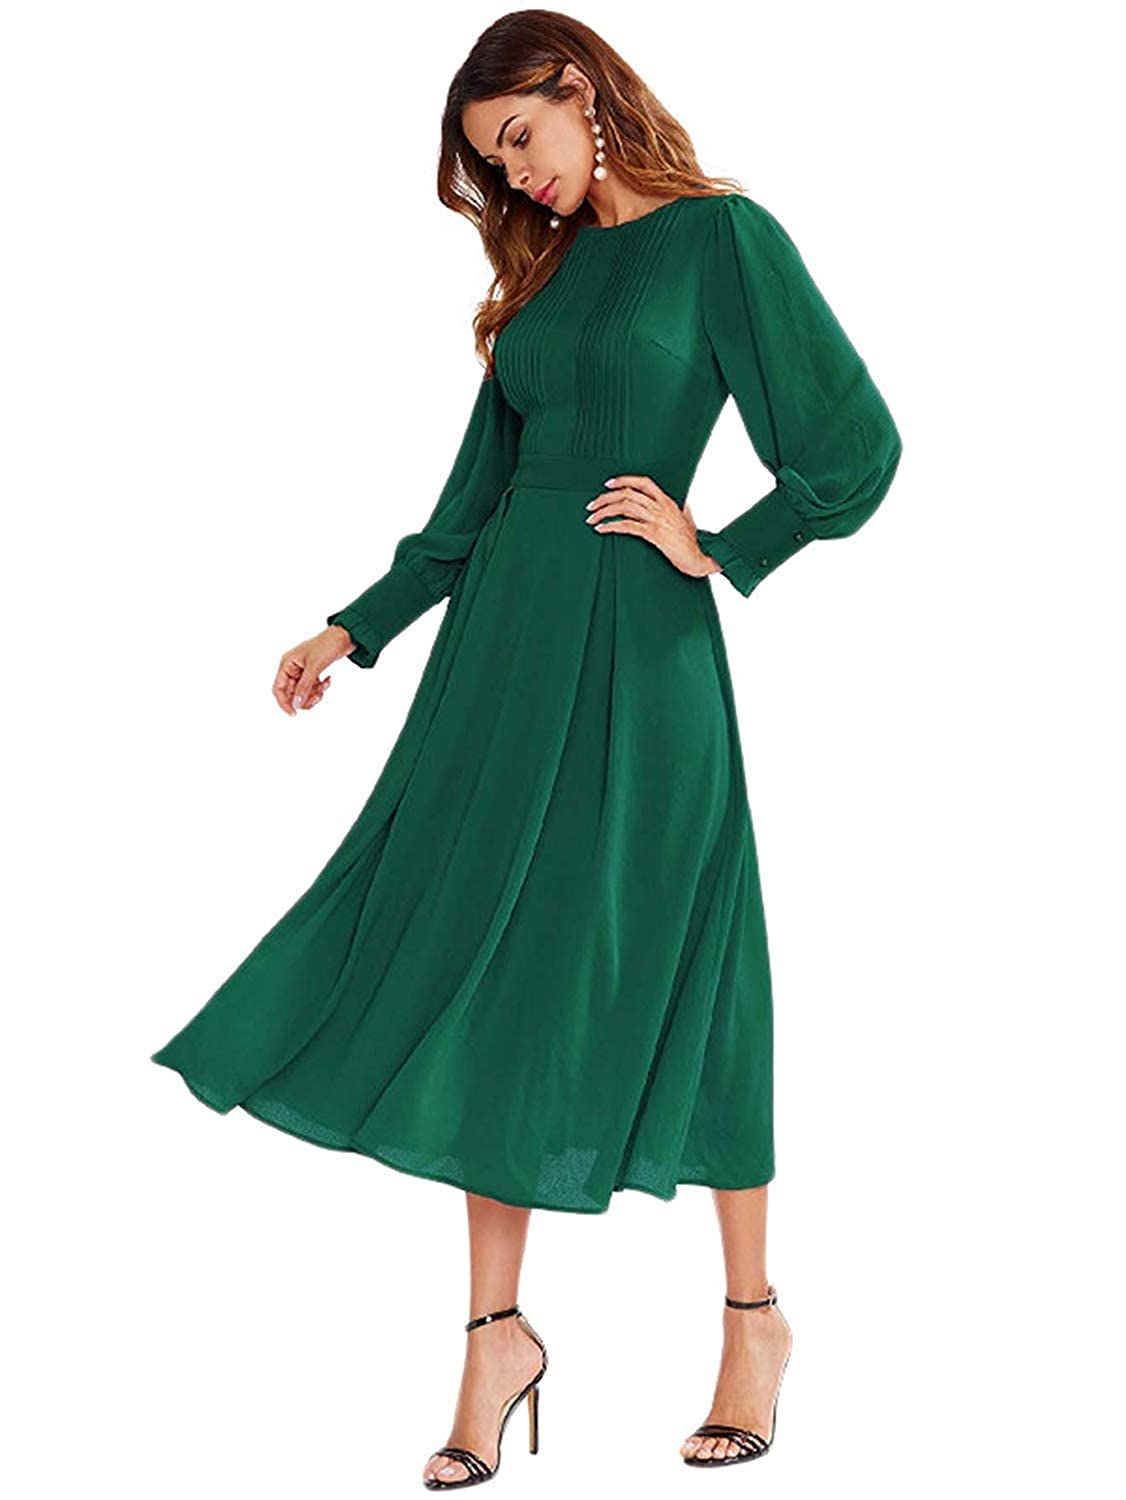 1940s Dress Styles Milumia Womens Elegant Frilled Long Sleeve Pleated Fit & Flare Dress $36.99 AT vintagedancer.com